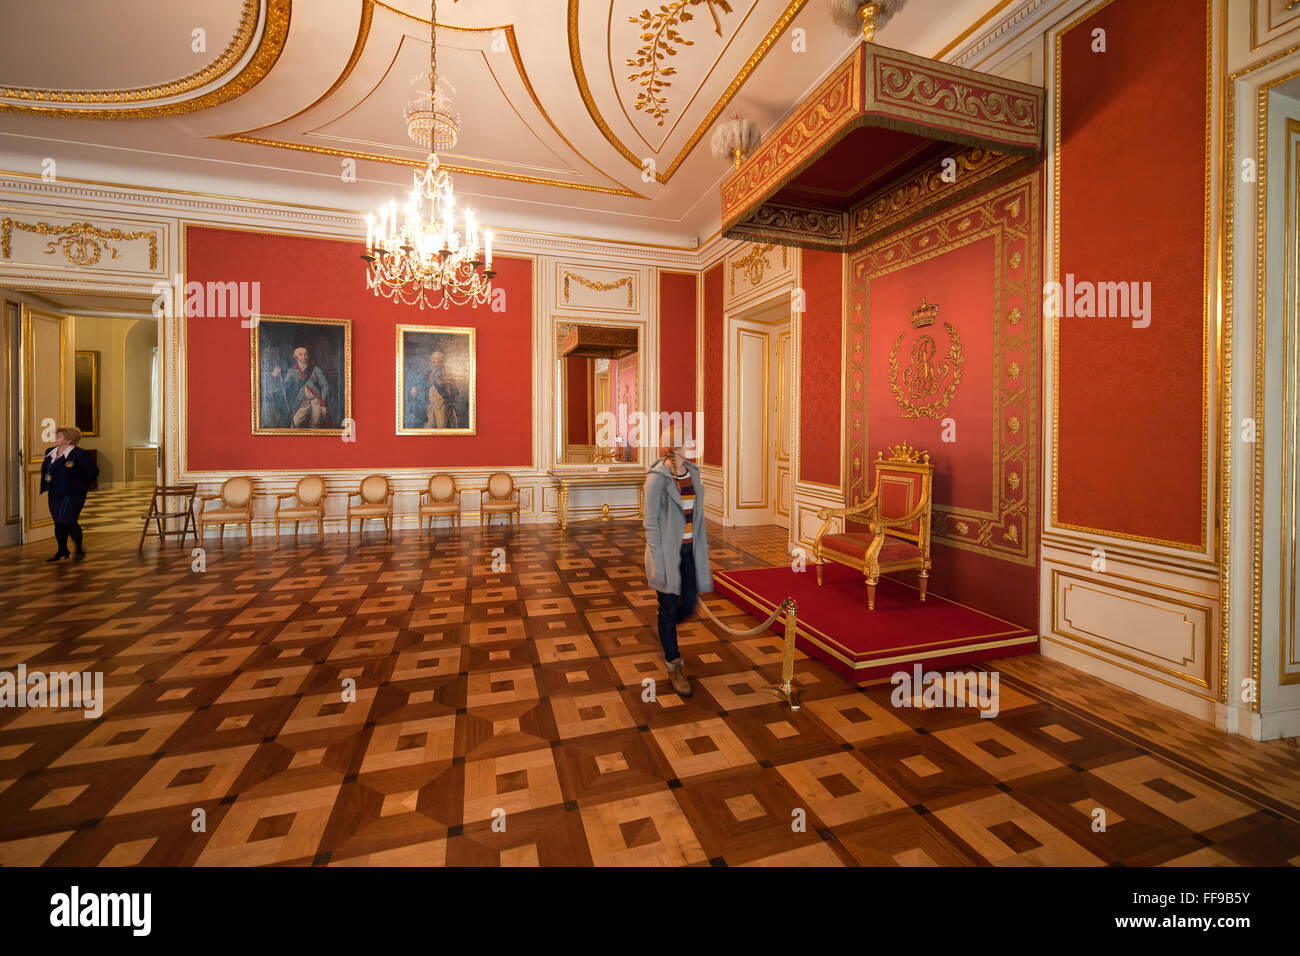 Poland, city of Warsaw, Royal Castle interior, throne in Council Chamber - Stock Image